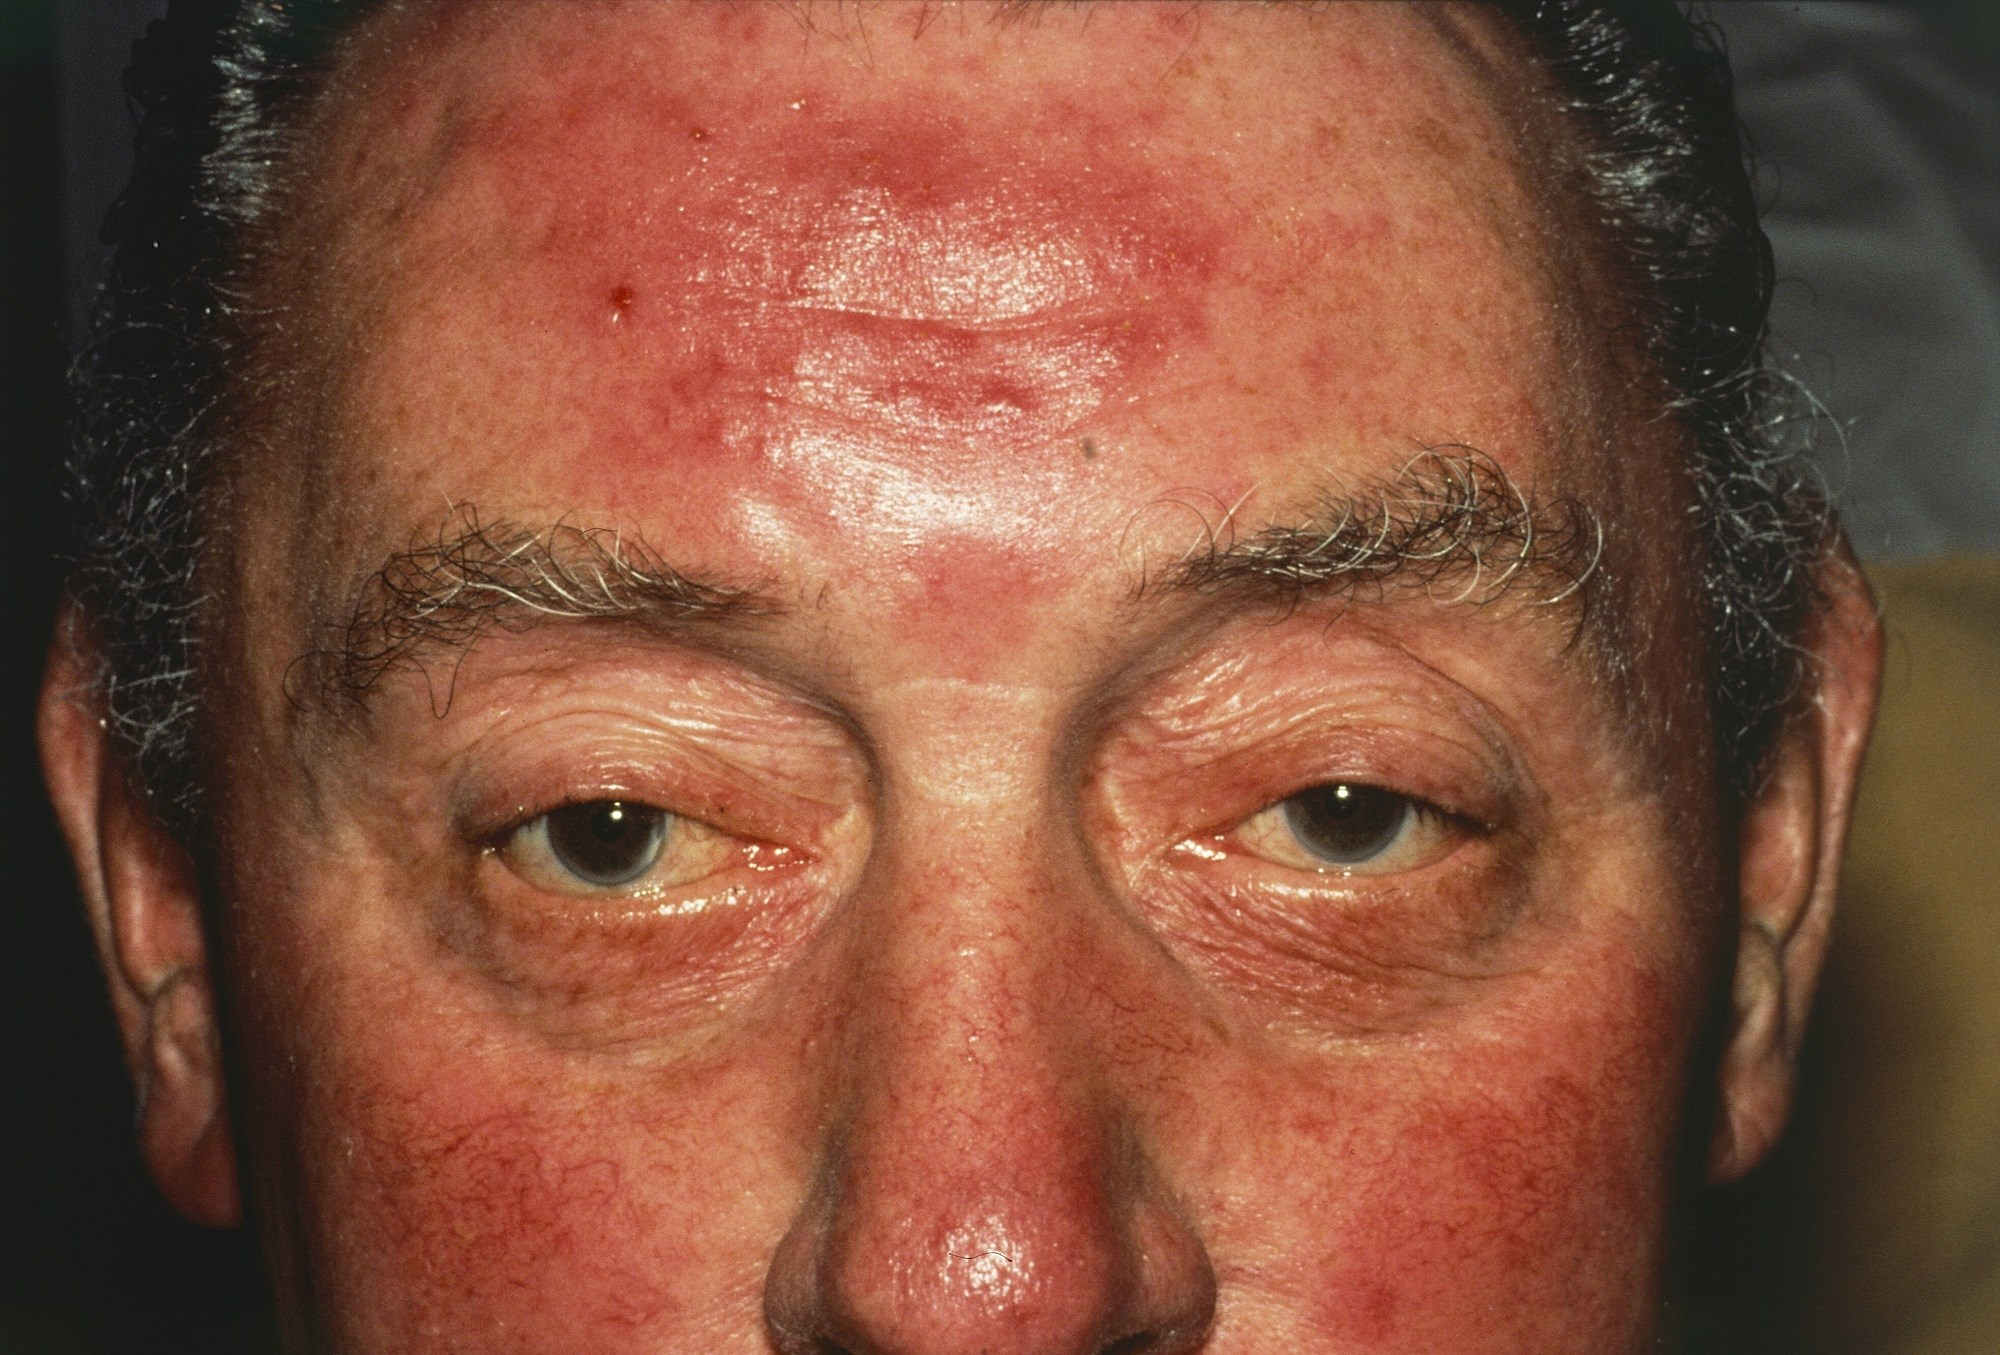 The investigators sought to assess the reduction in persistent erythema on day 1 of therapy, using data derived from 2 pivotal trials of oxymetazoline cream 1.0%. <i>Credit: Allan Harris</i>